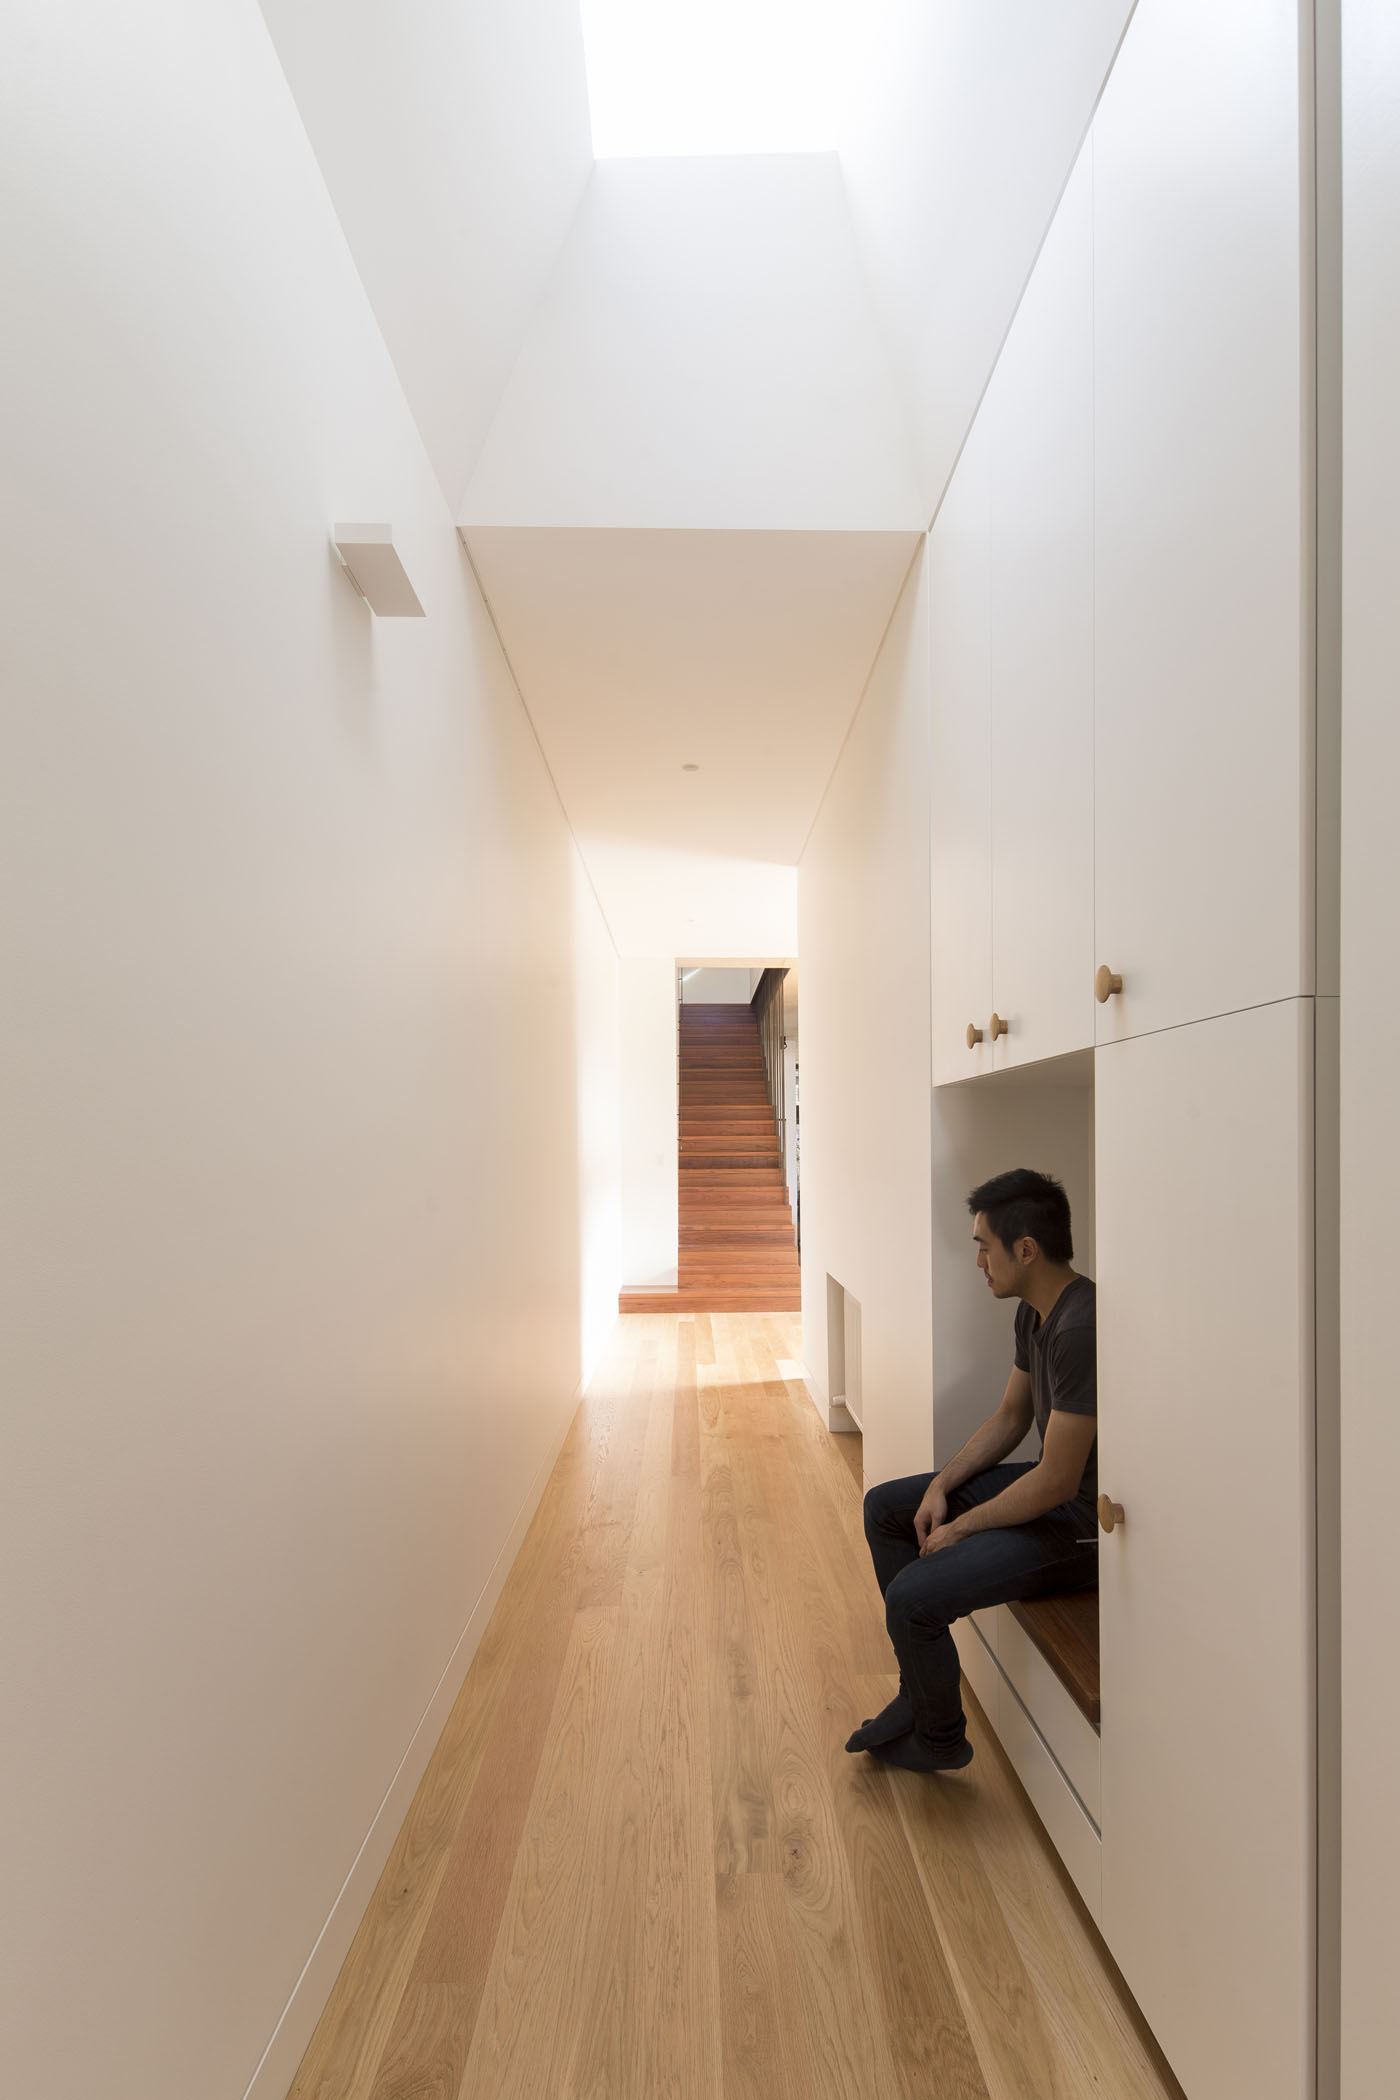 Sheppard Wilson House by Sydney award winning residential architecture office Sam Crawford Architects. Integrated joinery seat